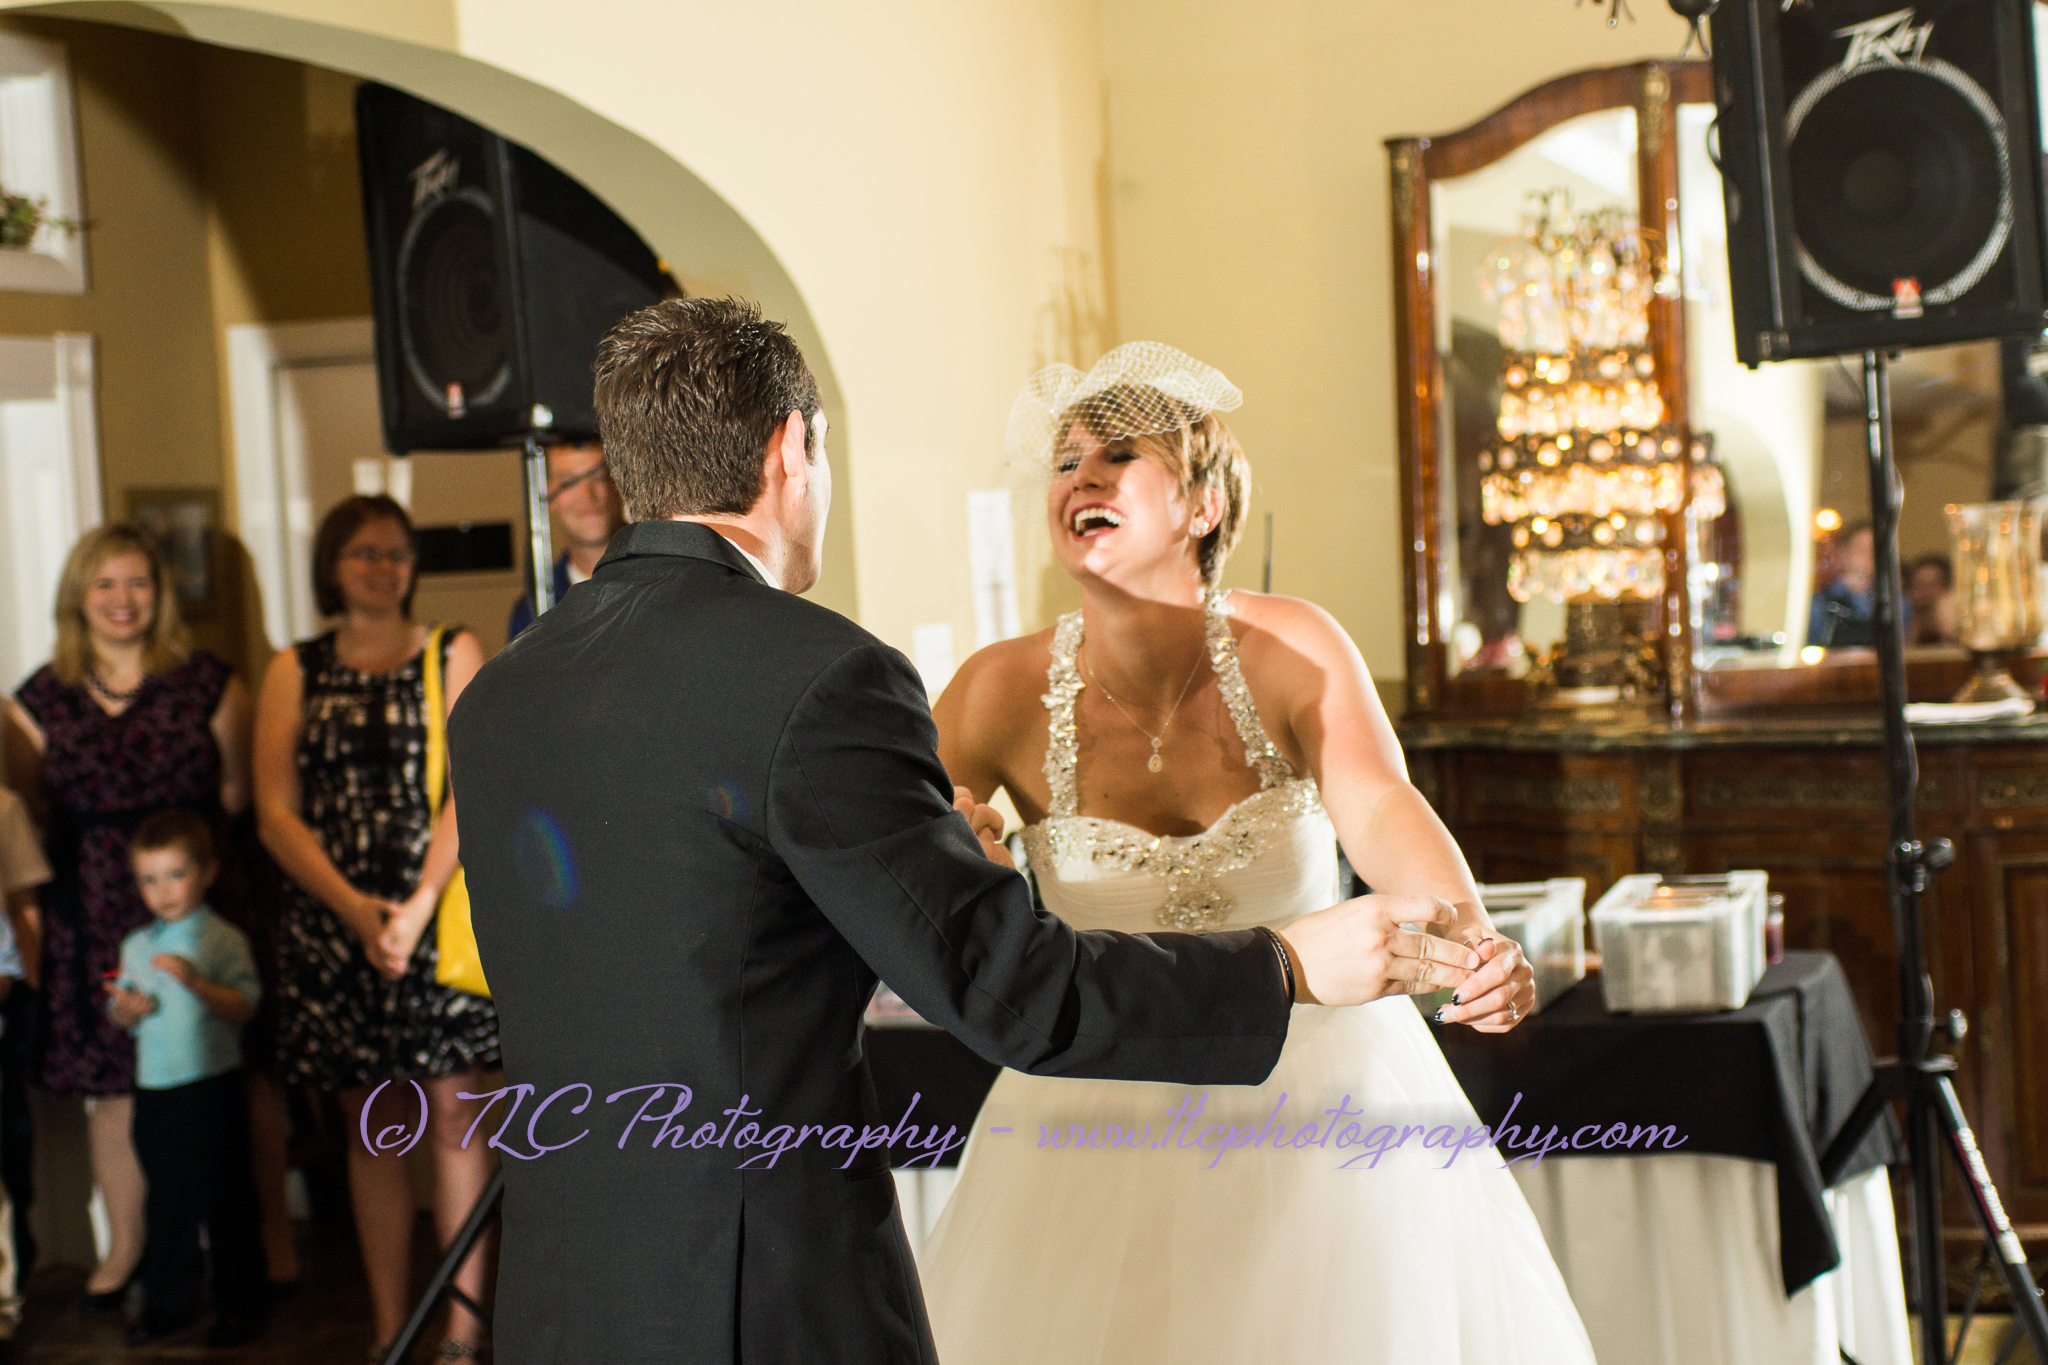 Wedding photography fun in Martinsburg WV